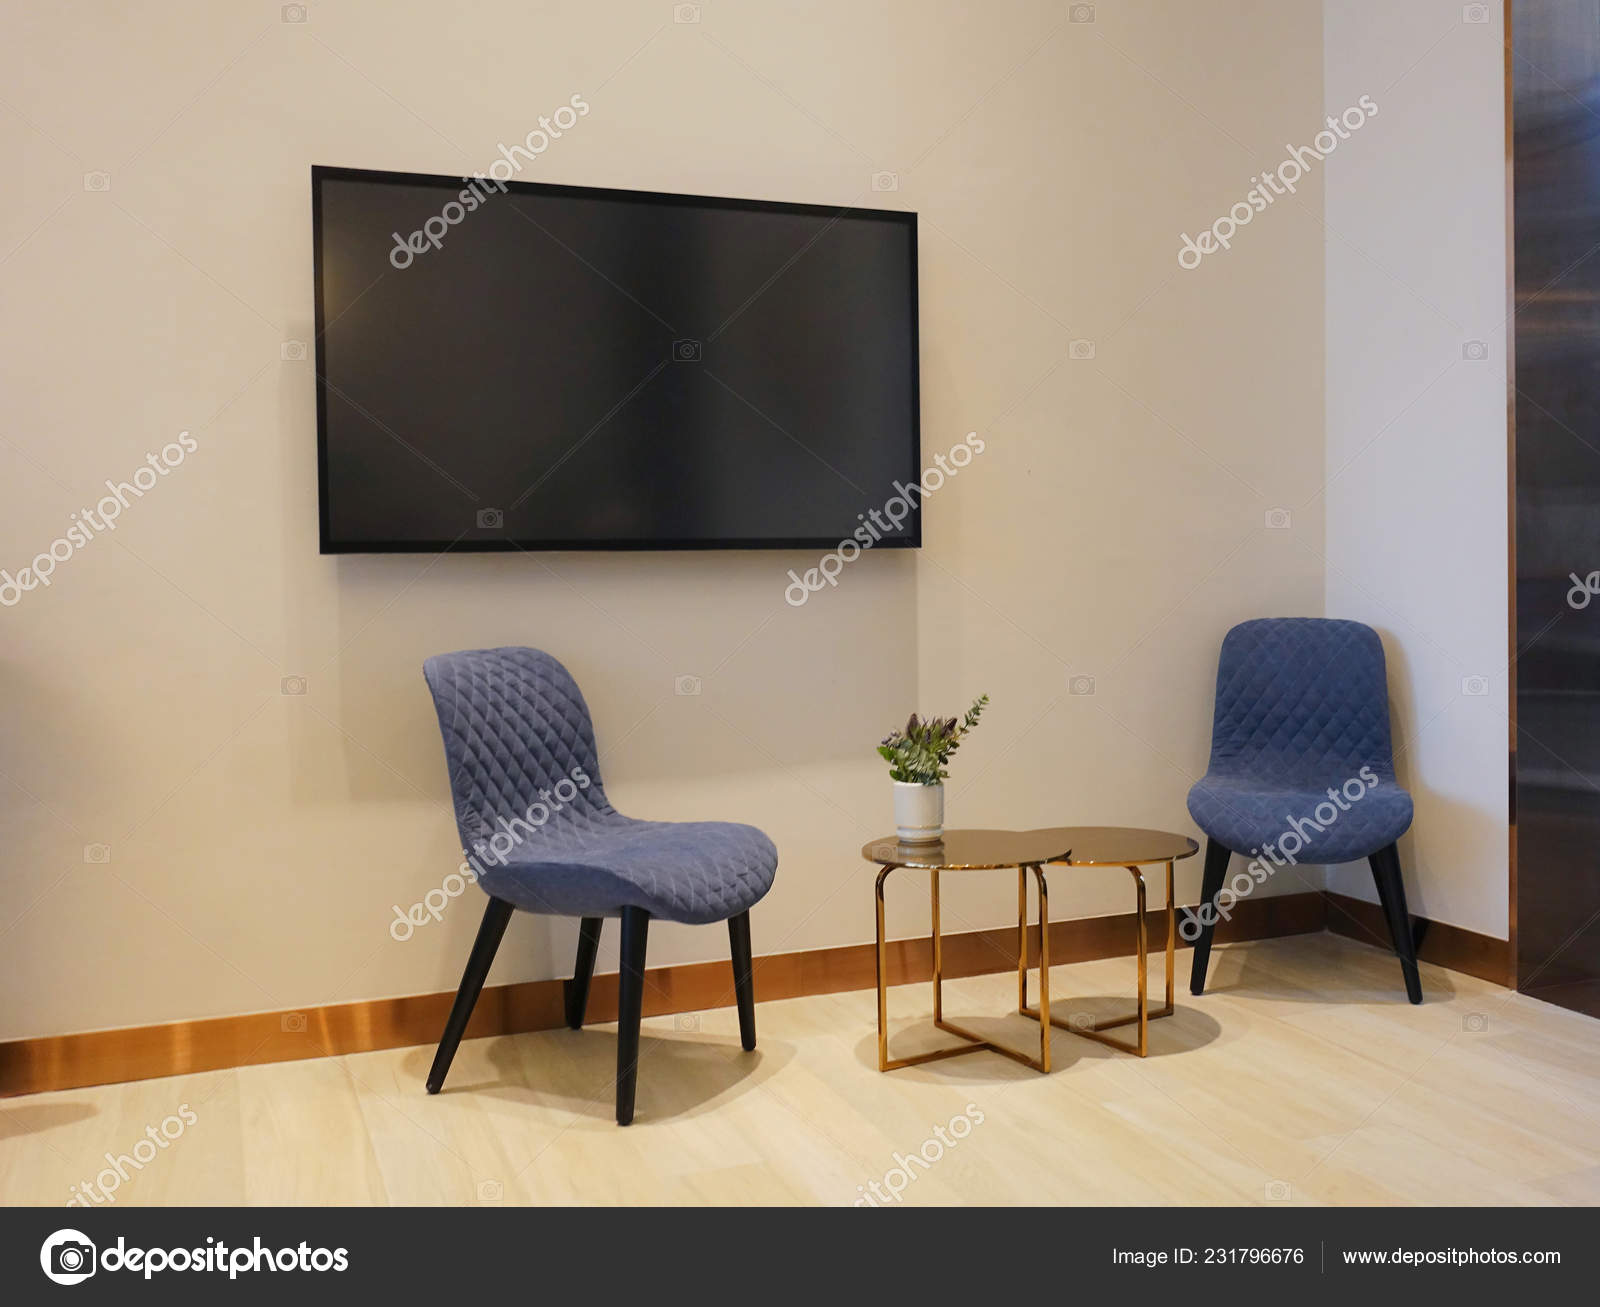 Pictures Living Room Chairs Luxury Modern Living Room Chairs Table Blank Screen Sofa Decoration Stock Photo C Tampatra Hotmail Com 231796676